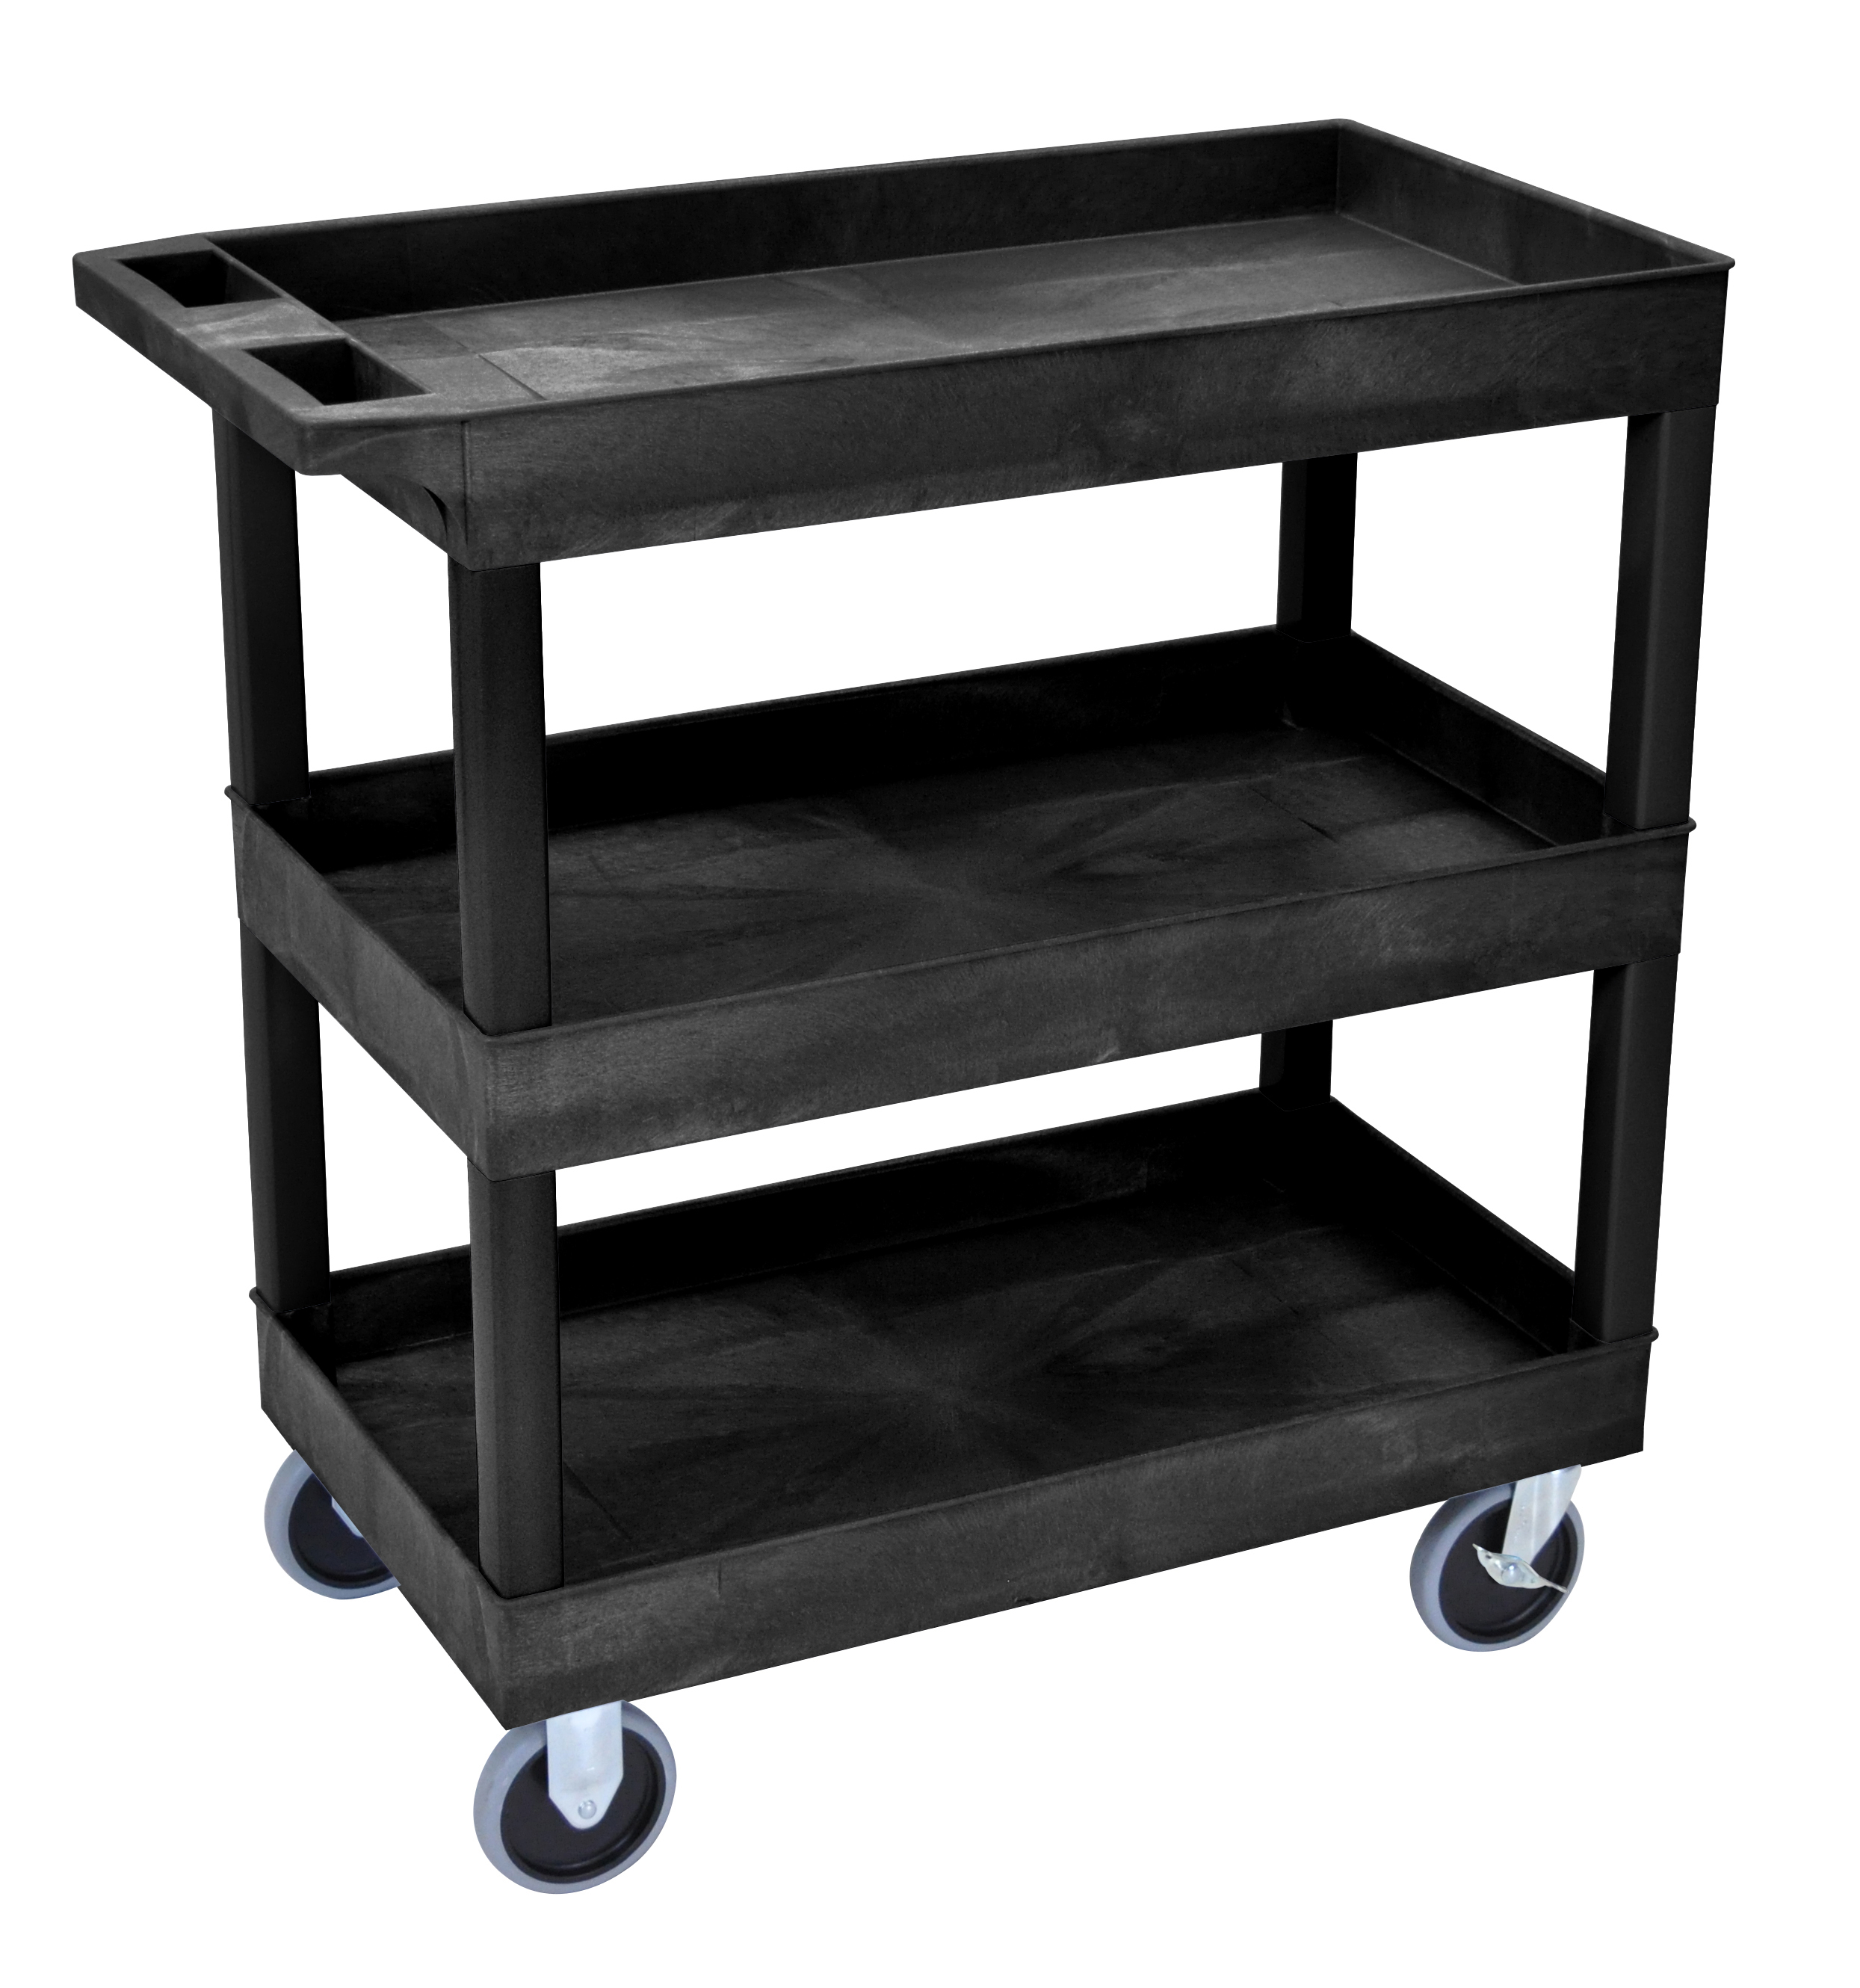 Plastic Utility Cart with 3 tub shelves (high capacity)